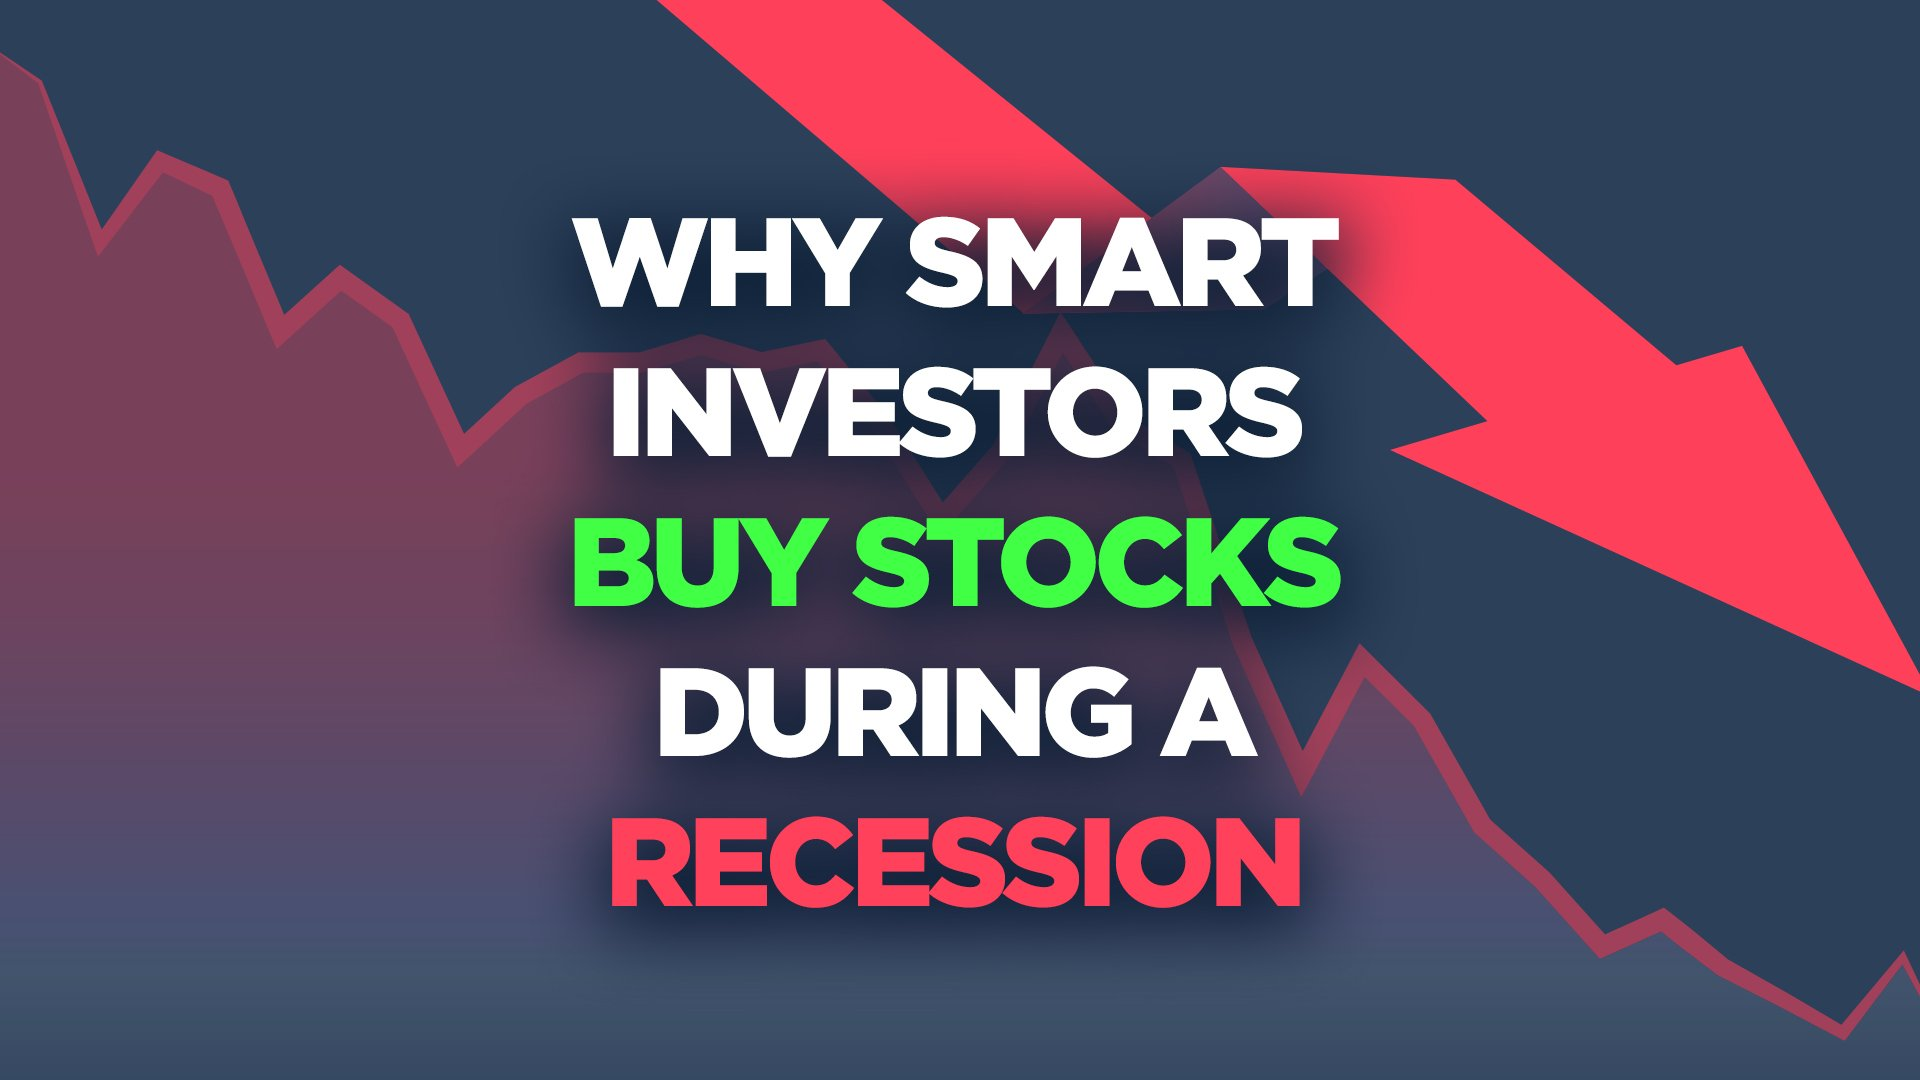 Why Smart Investors Buy Stocks During A Recession